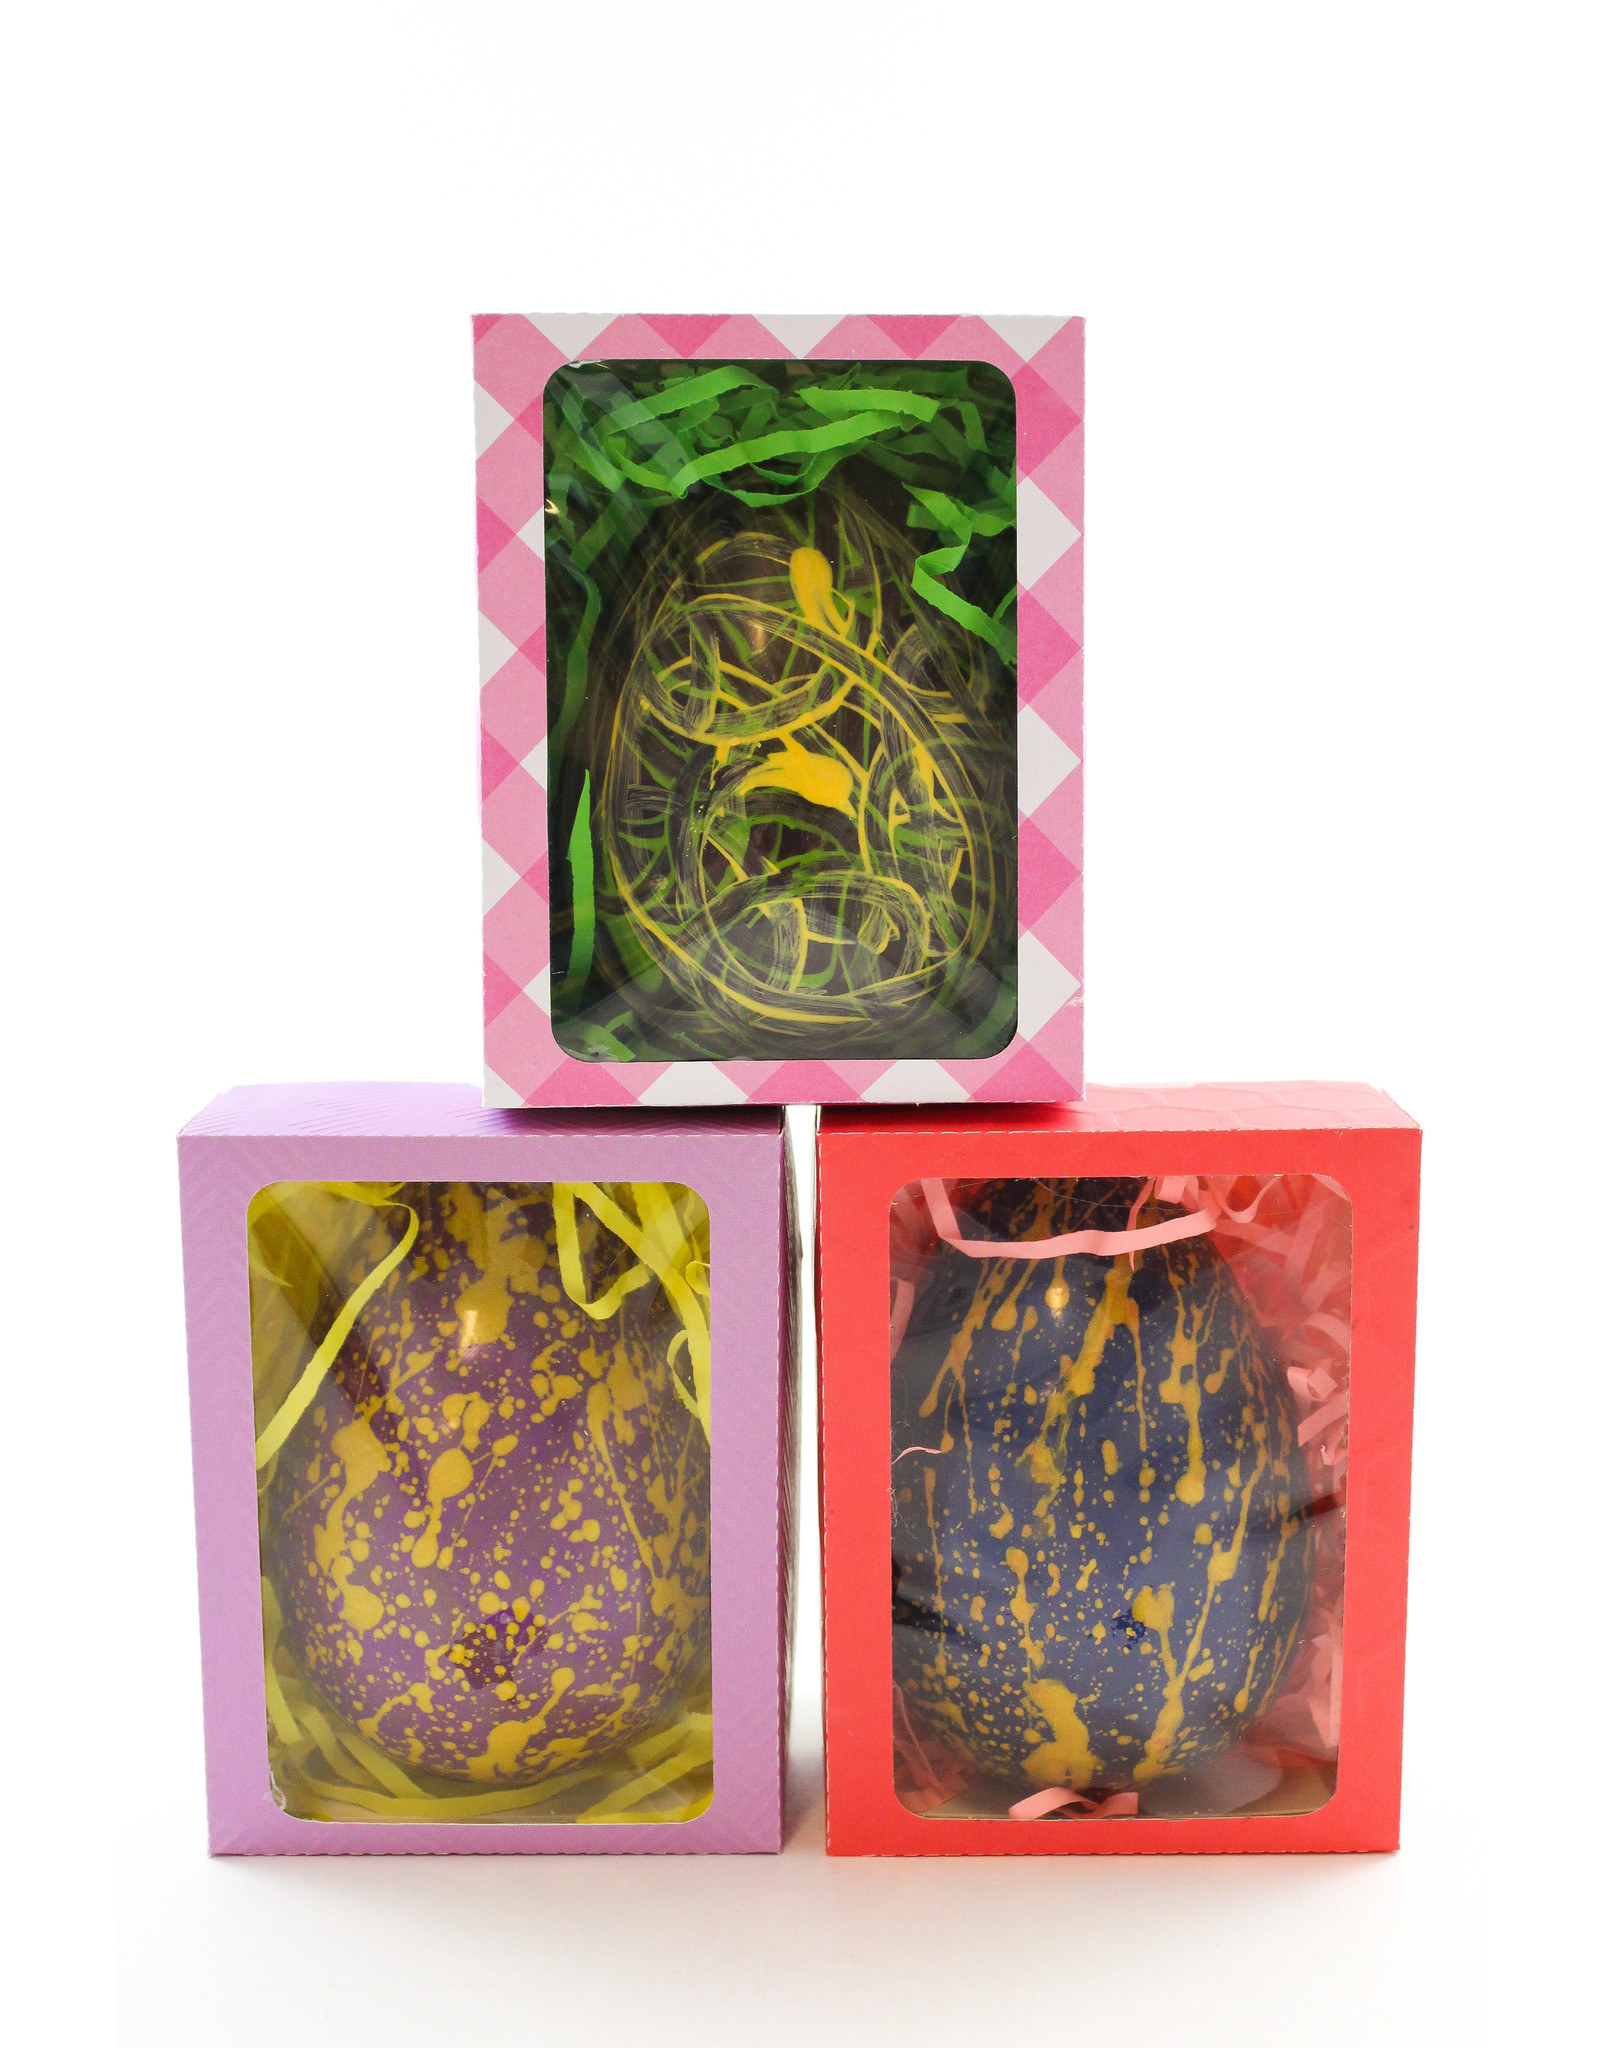 Penny Steele Hand-Painted Surprise Eggs by Cabotto Chocolates